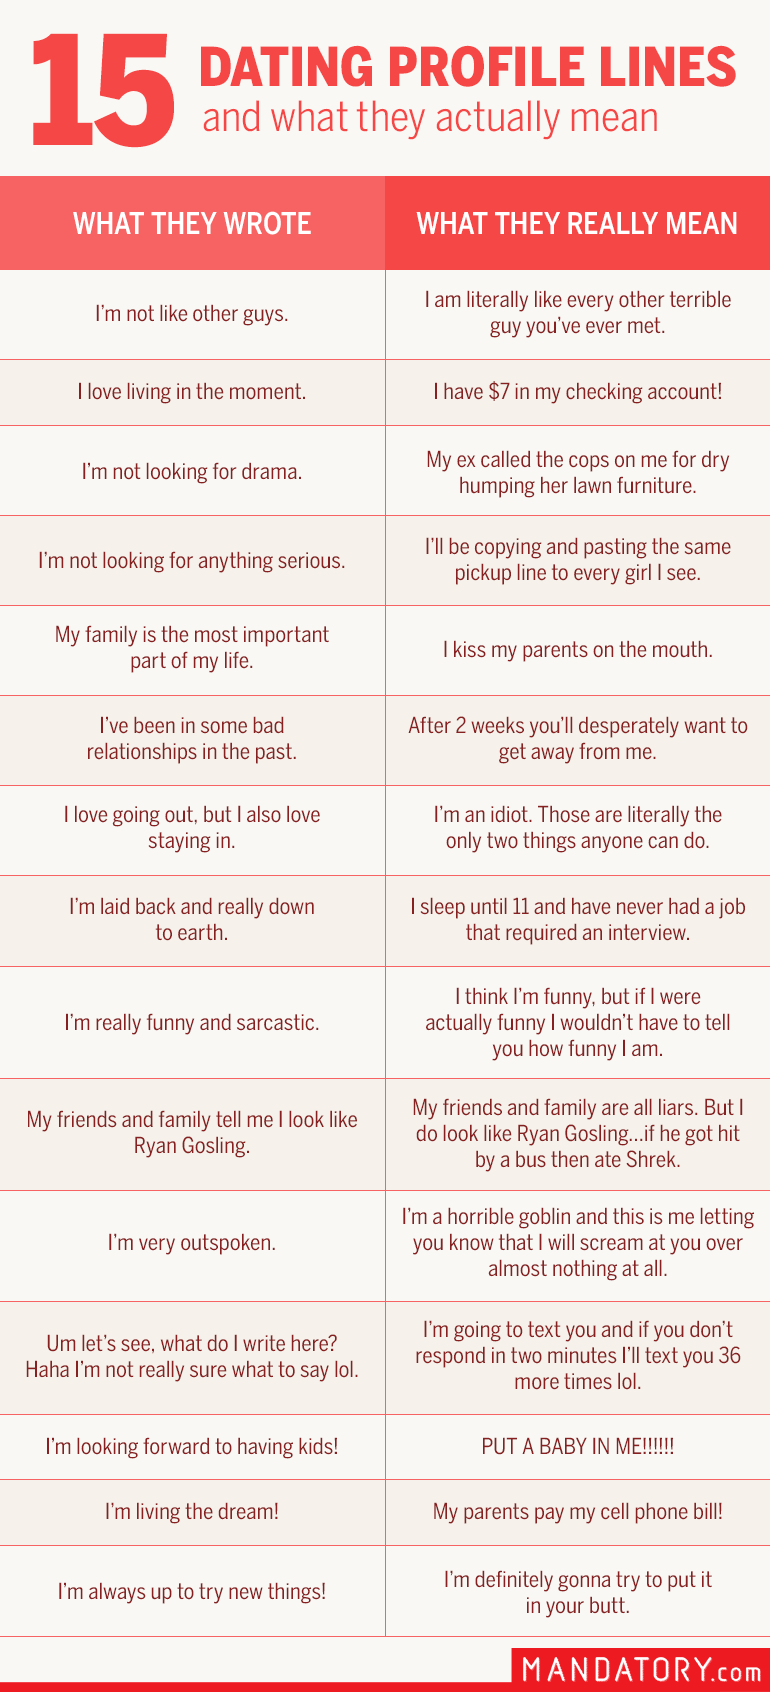 Hilarious dating profile lines